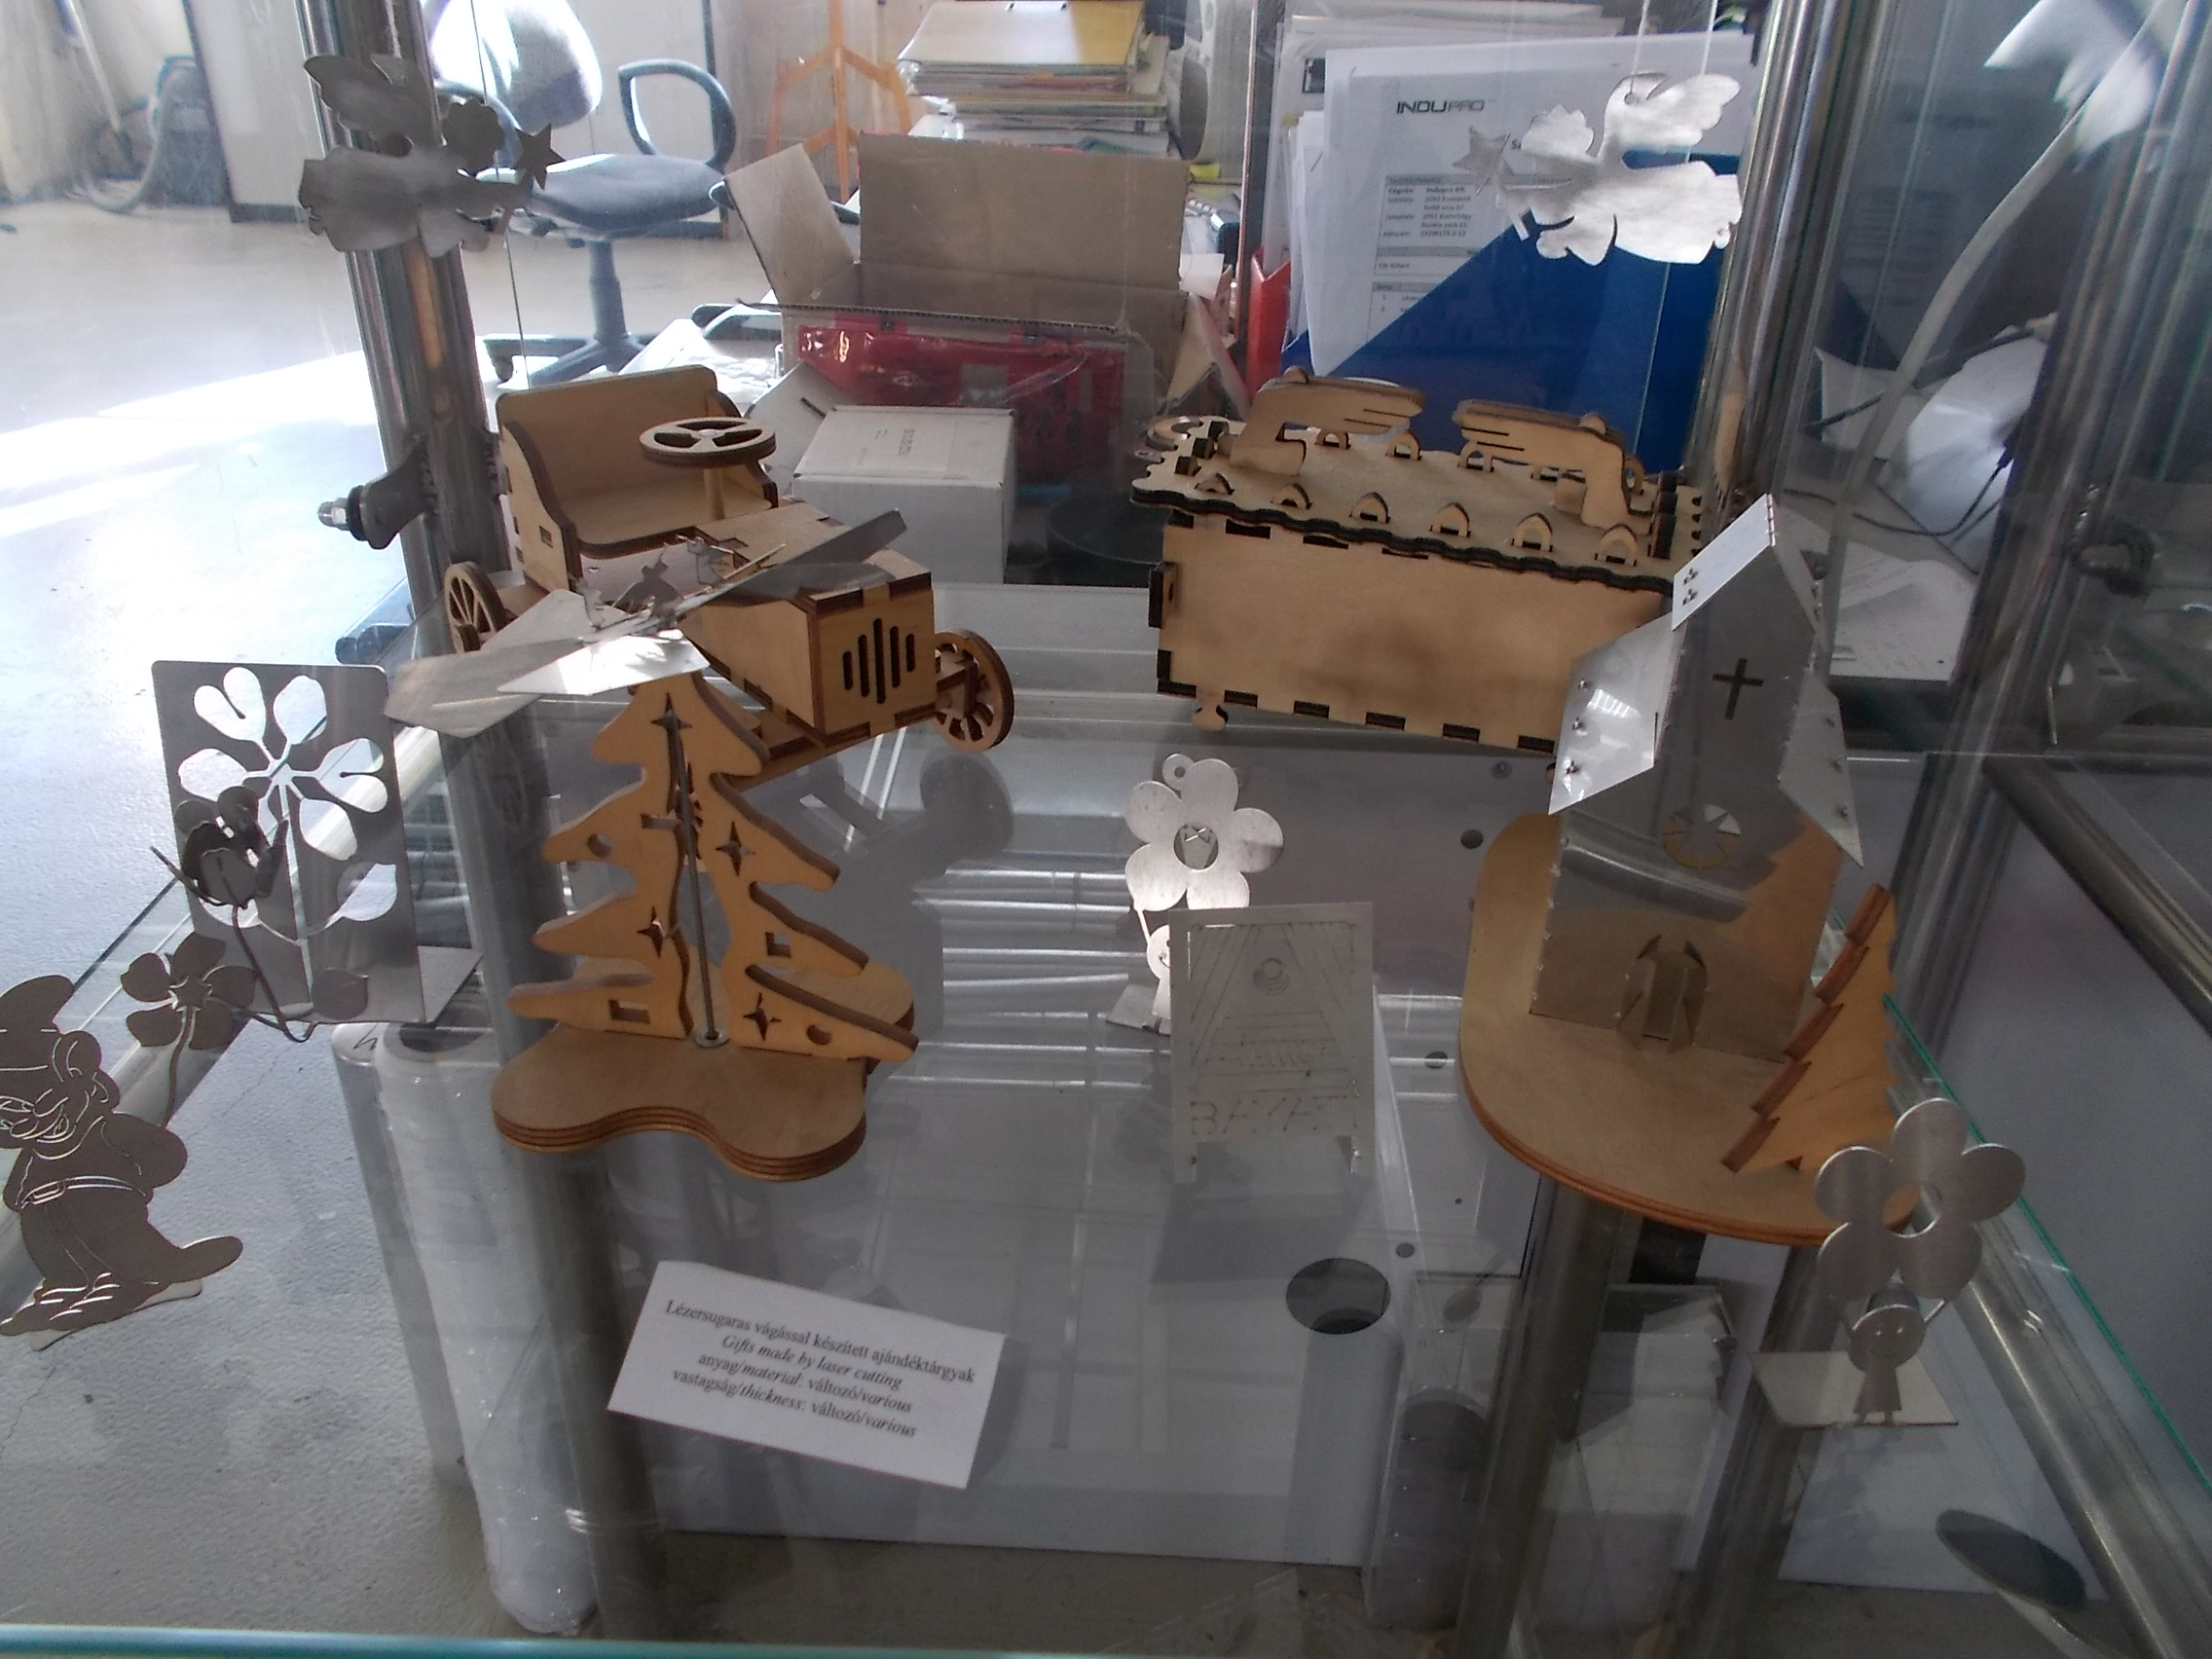 File:Gifts made by laser cutting, Laser Technology Lab, Bay Zoltan Applied  Research